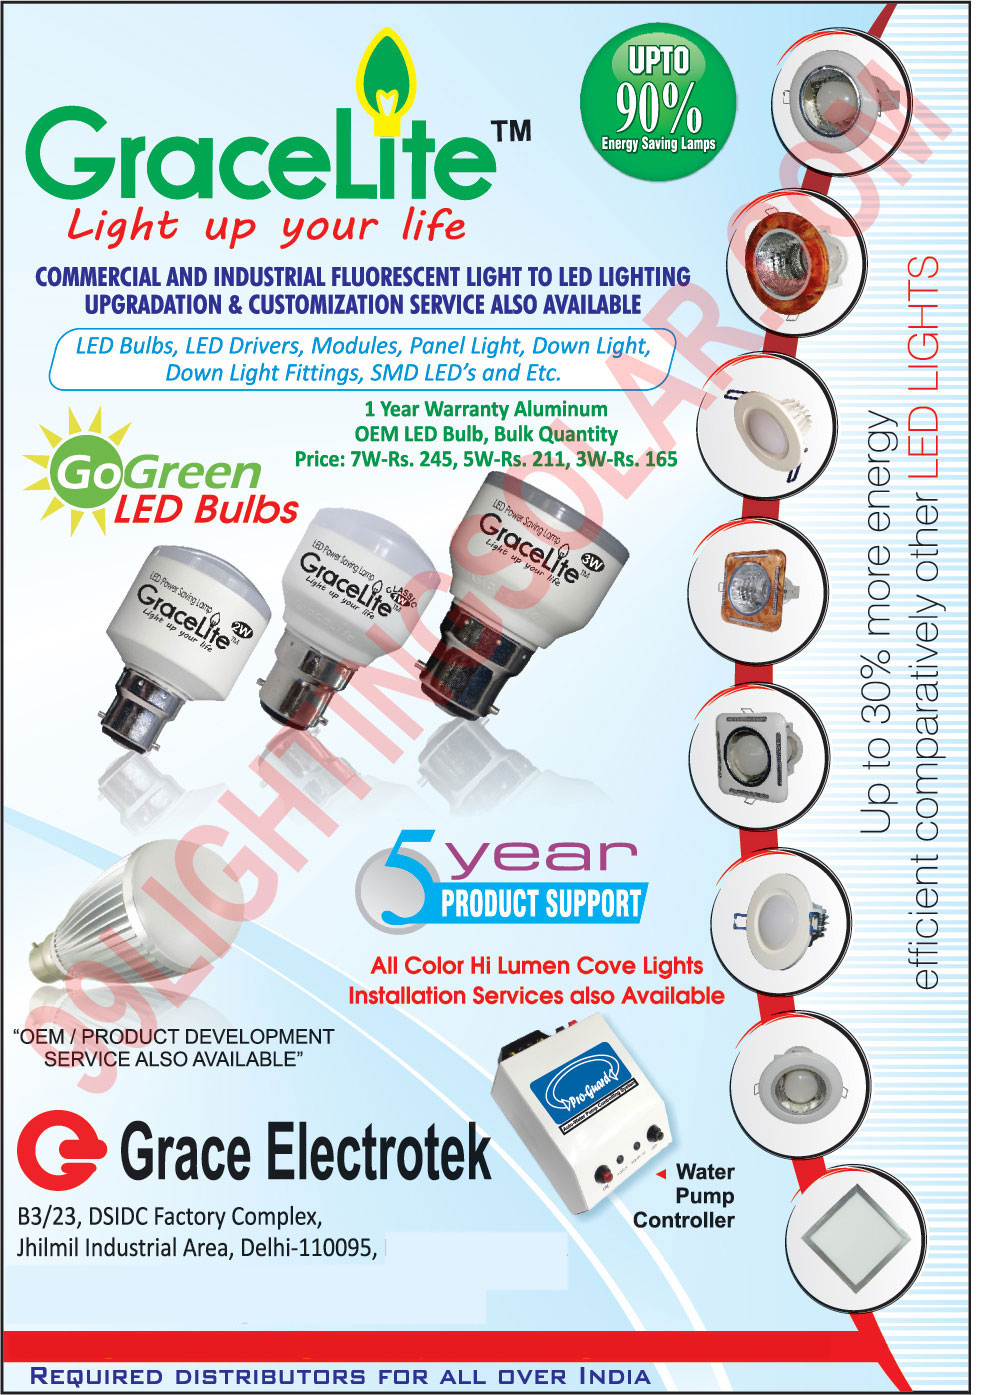 Led Bulbs, Led Lights, Panel Lights, Downlights, Down Light Fittings, SMD Led, Led SMD, Water Pump Controllers,Led Tubes, Led Downlights, Square Down Light Fitting, Water Pump Controller, Round Downlights Fitting